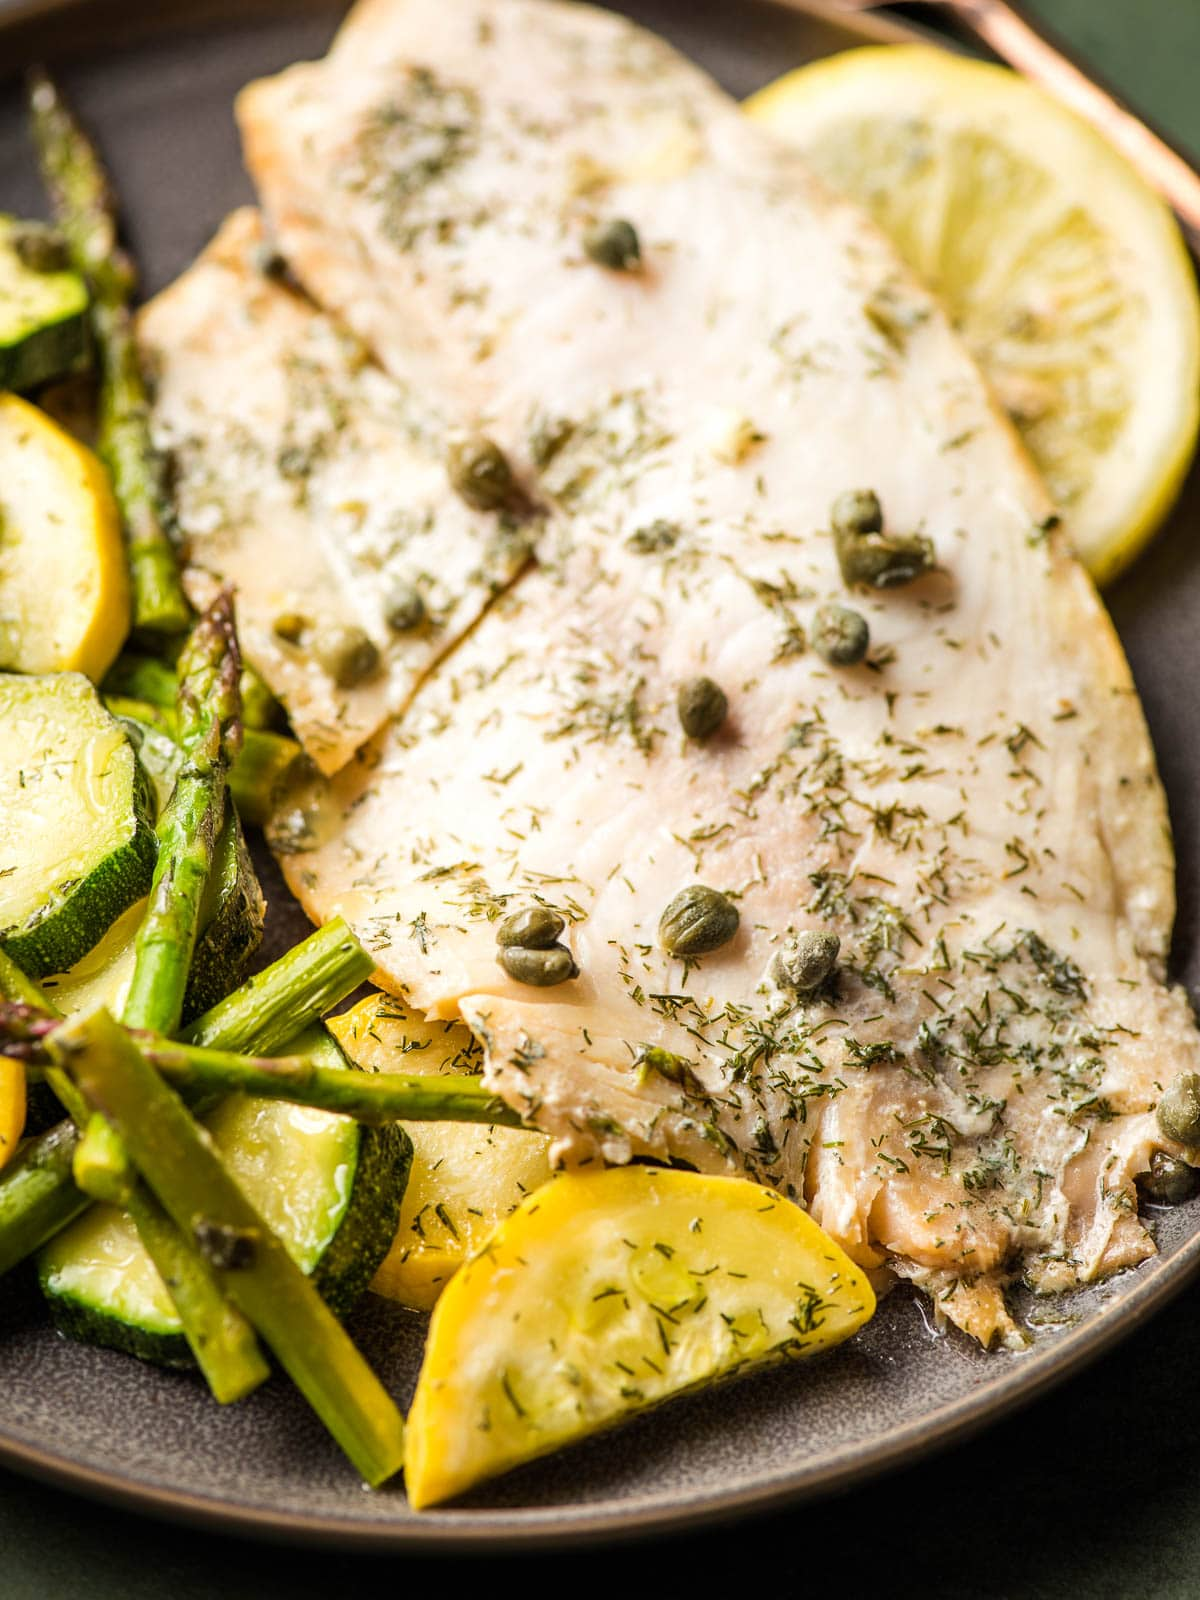 Seasoned tilapia fillet otpped with capers on a plate with sliced squash and asparagus.